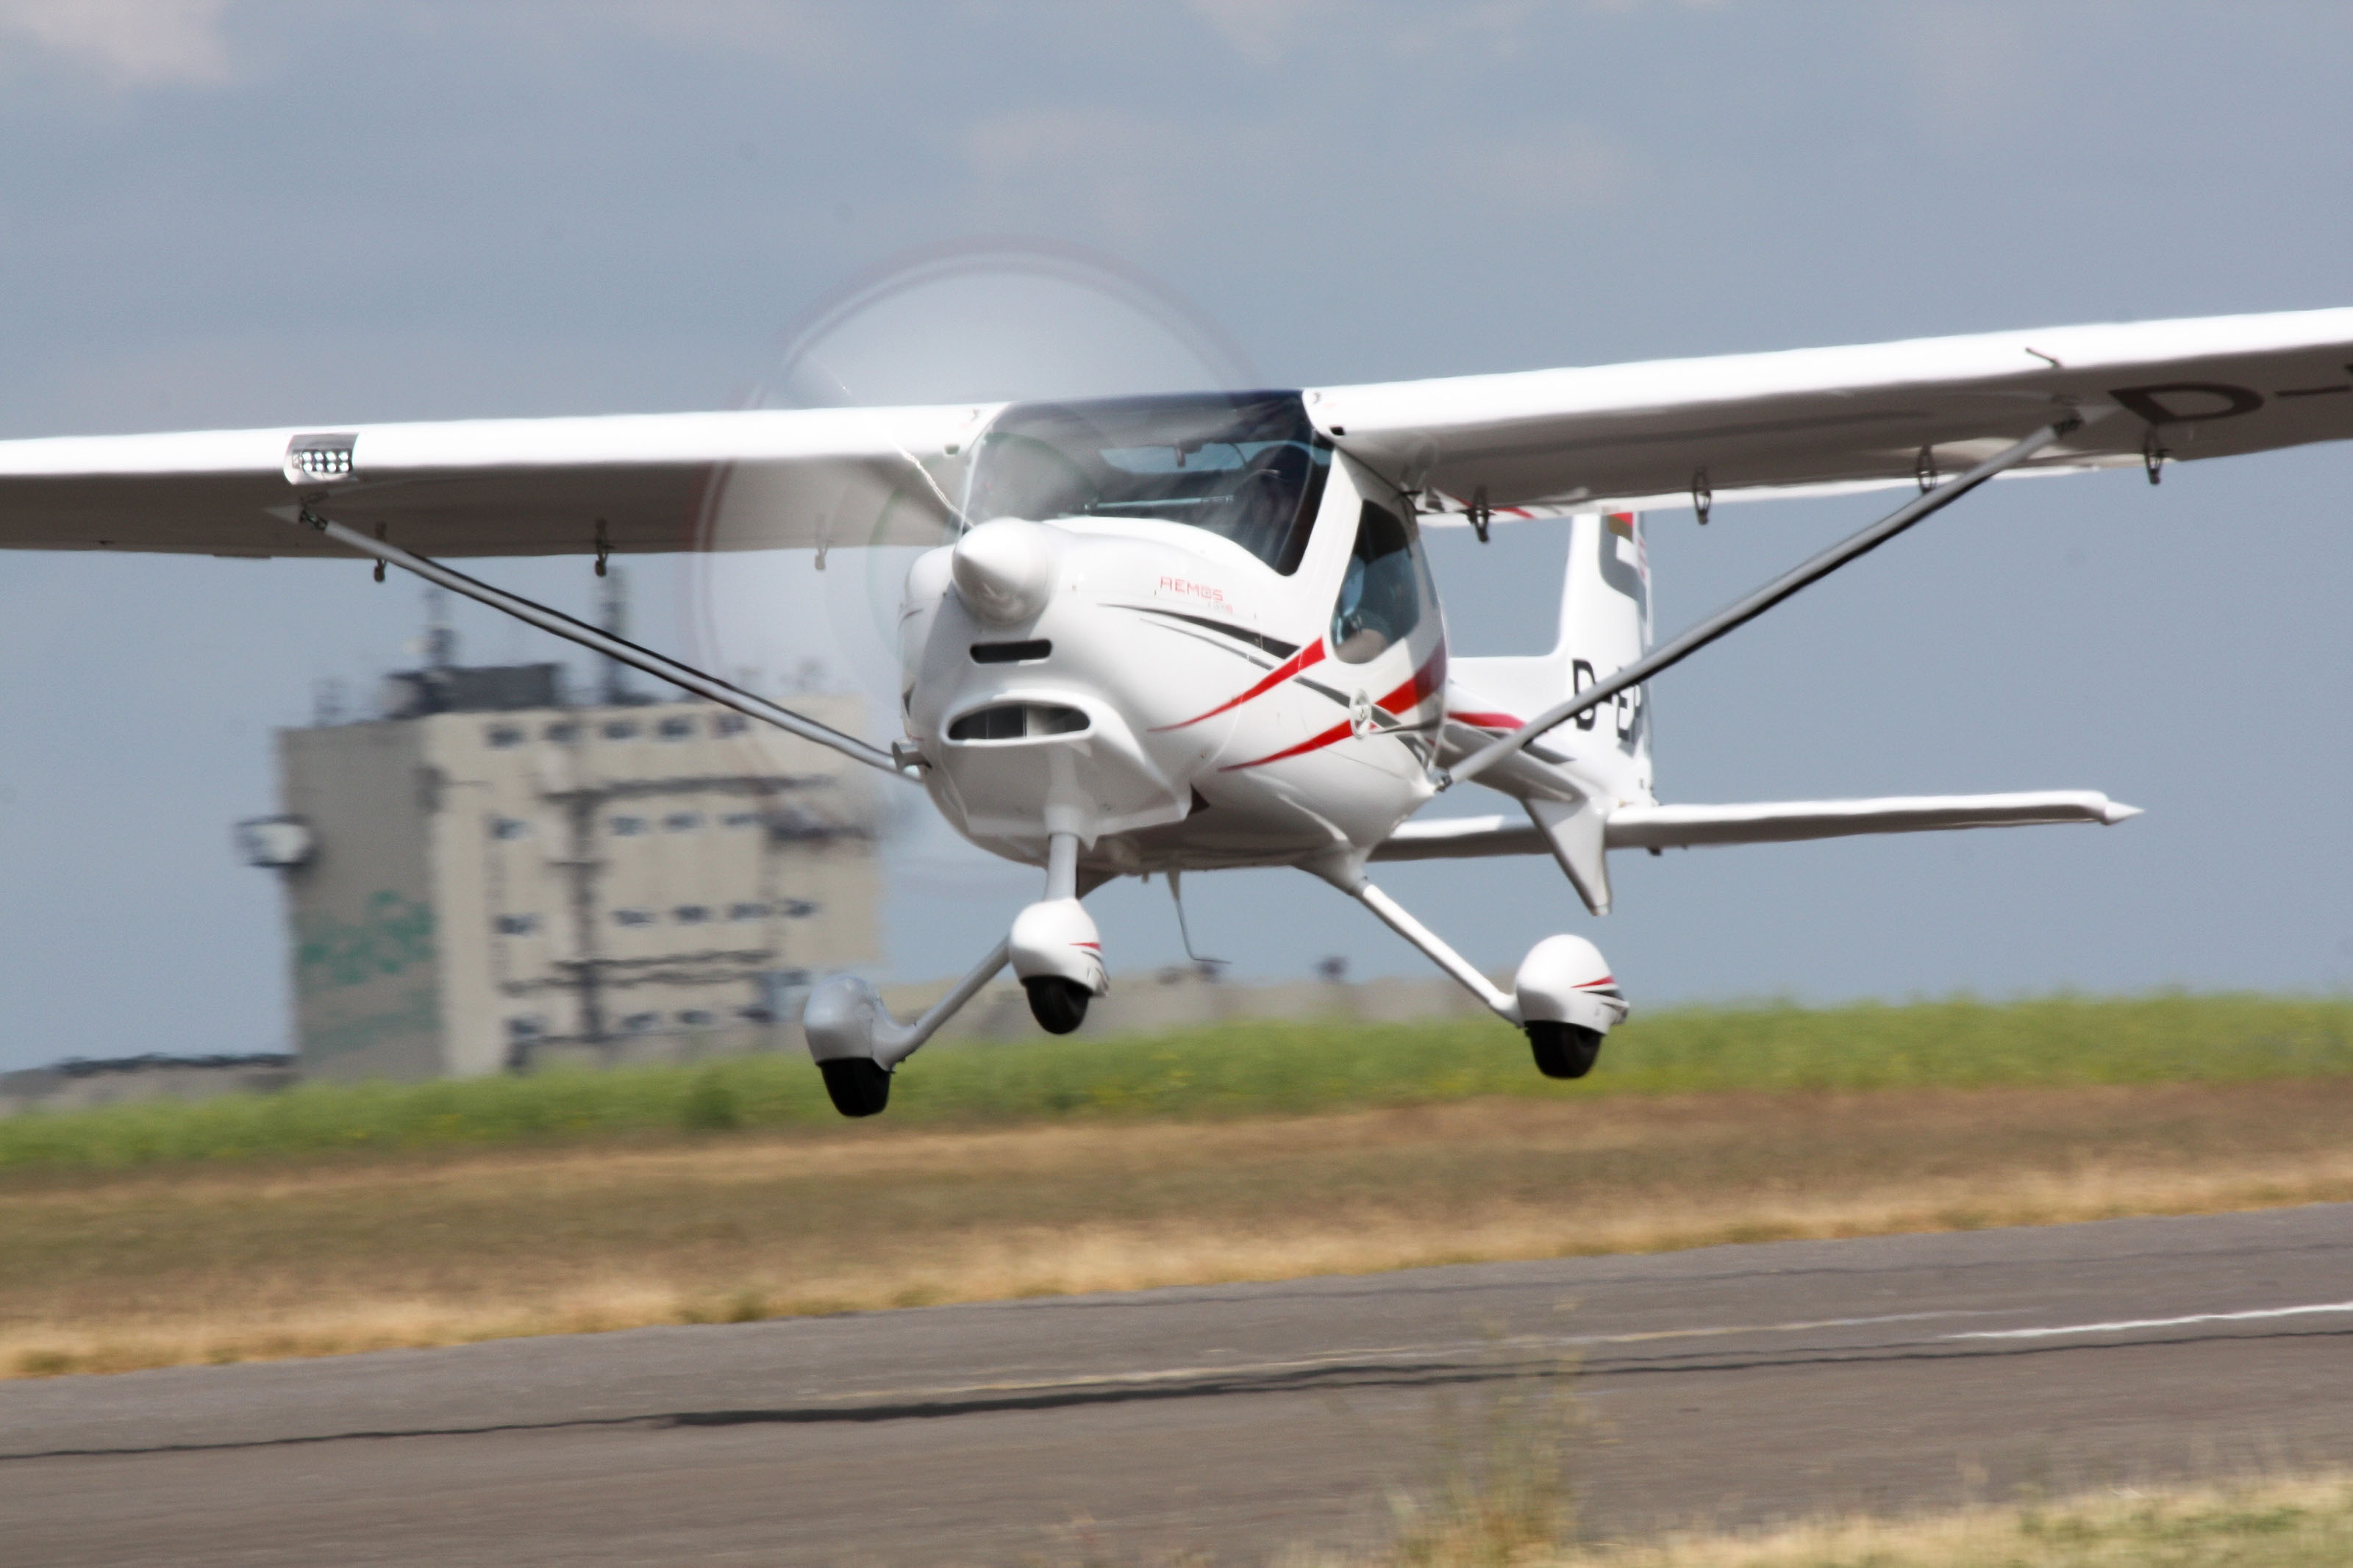 The Remos GXiS made its first flight May 26. Photo courtesy of Remos AG.